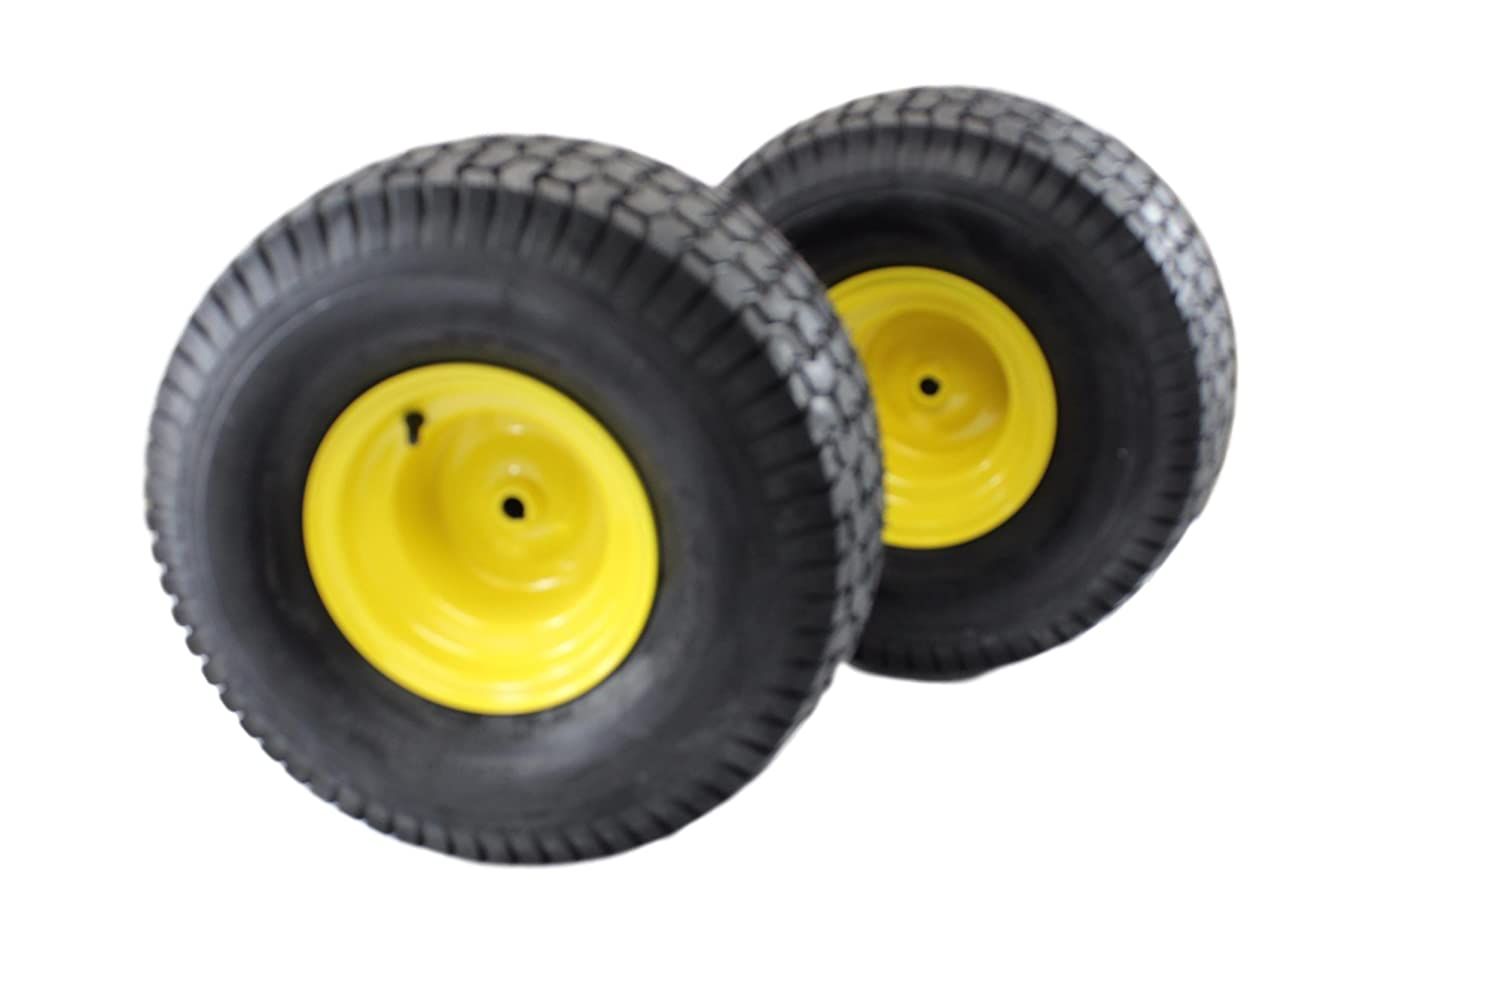 Antego Tire & Wheel (Set of 2) 20x10.00-8 Tires & Wheels 2 Ply for Lawn & Garden Mower Turf Tires A87001800601022010008-B2 ATW-001